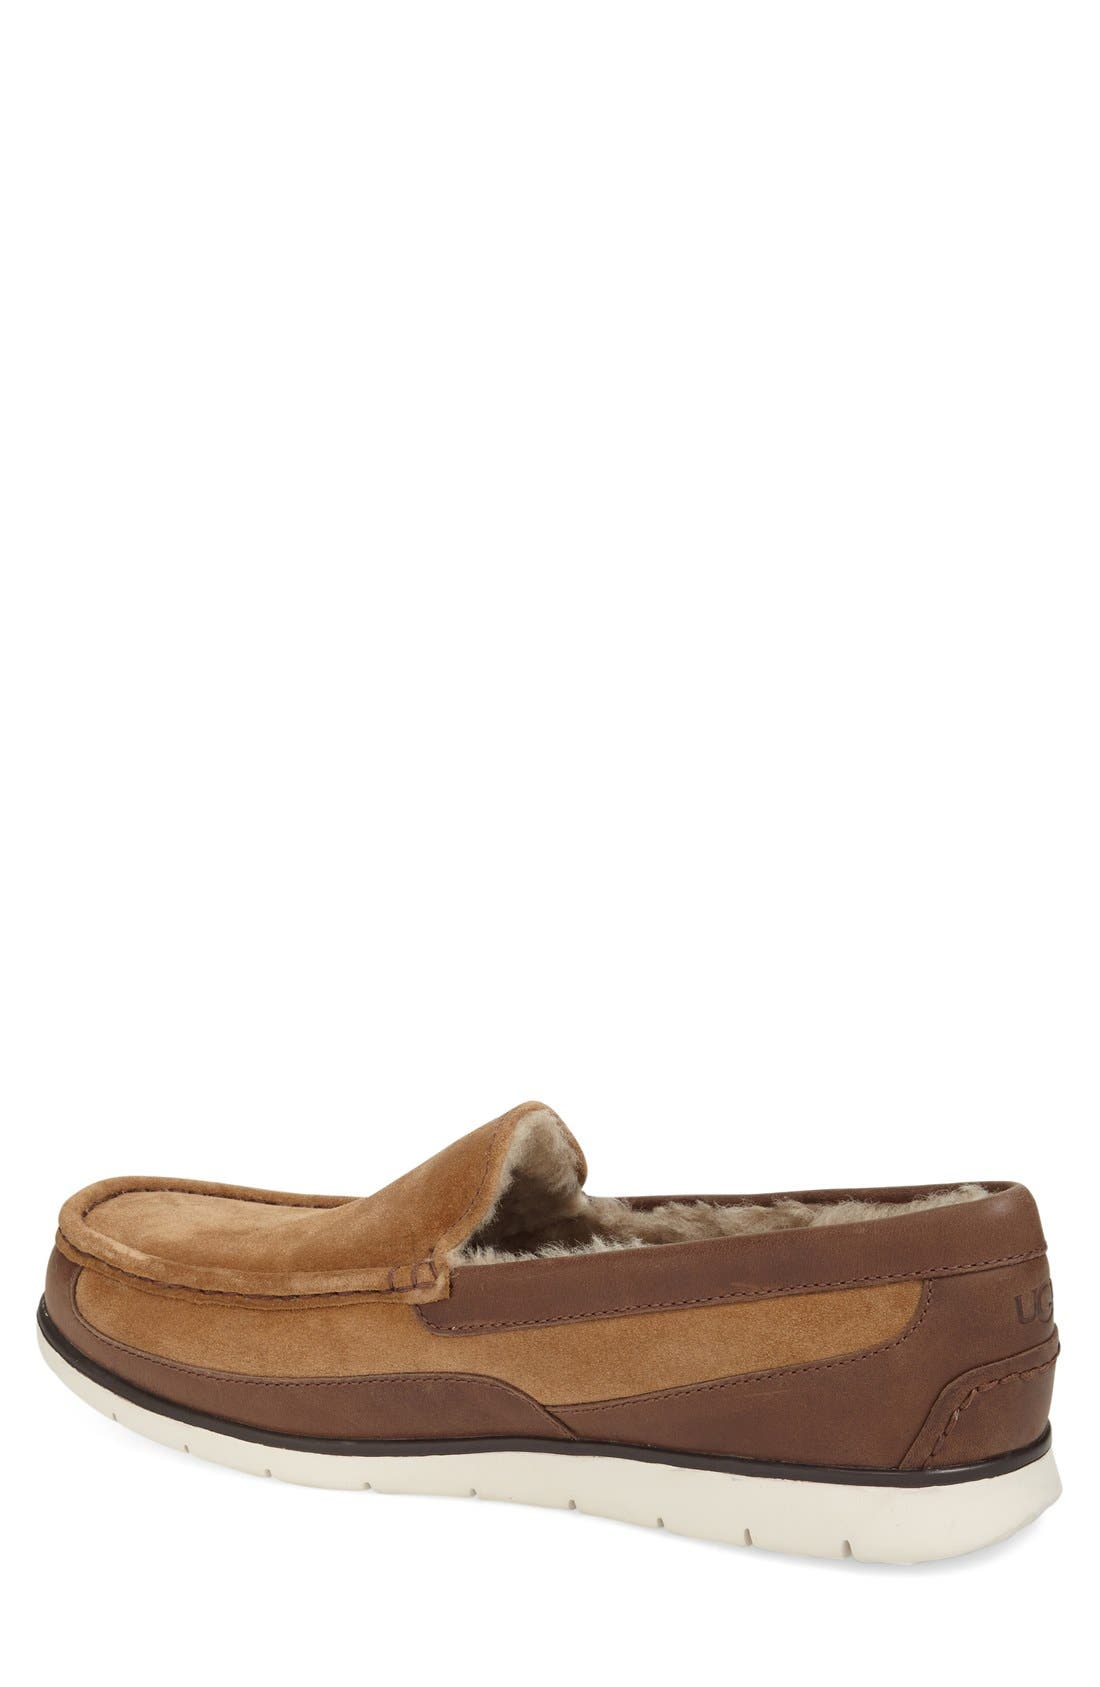 Fascot Indoor/Outdoor Slipper,                             Alternate thumbnail 3, color,                             Chestnut